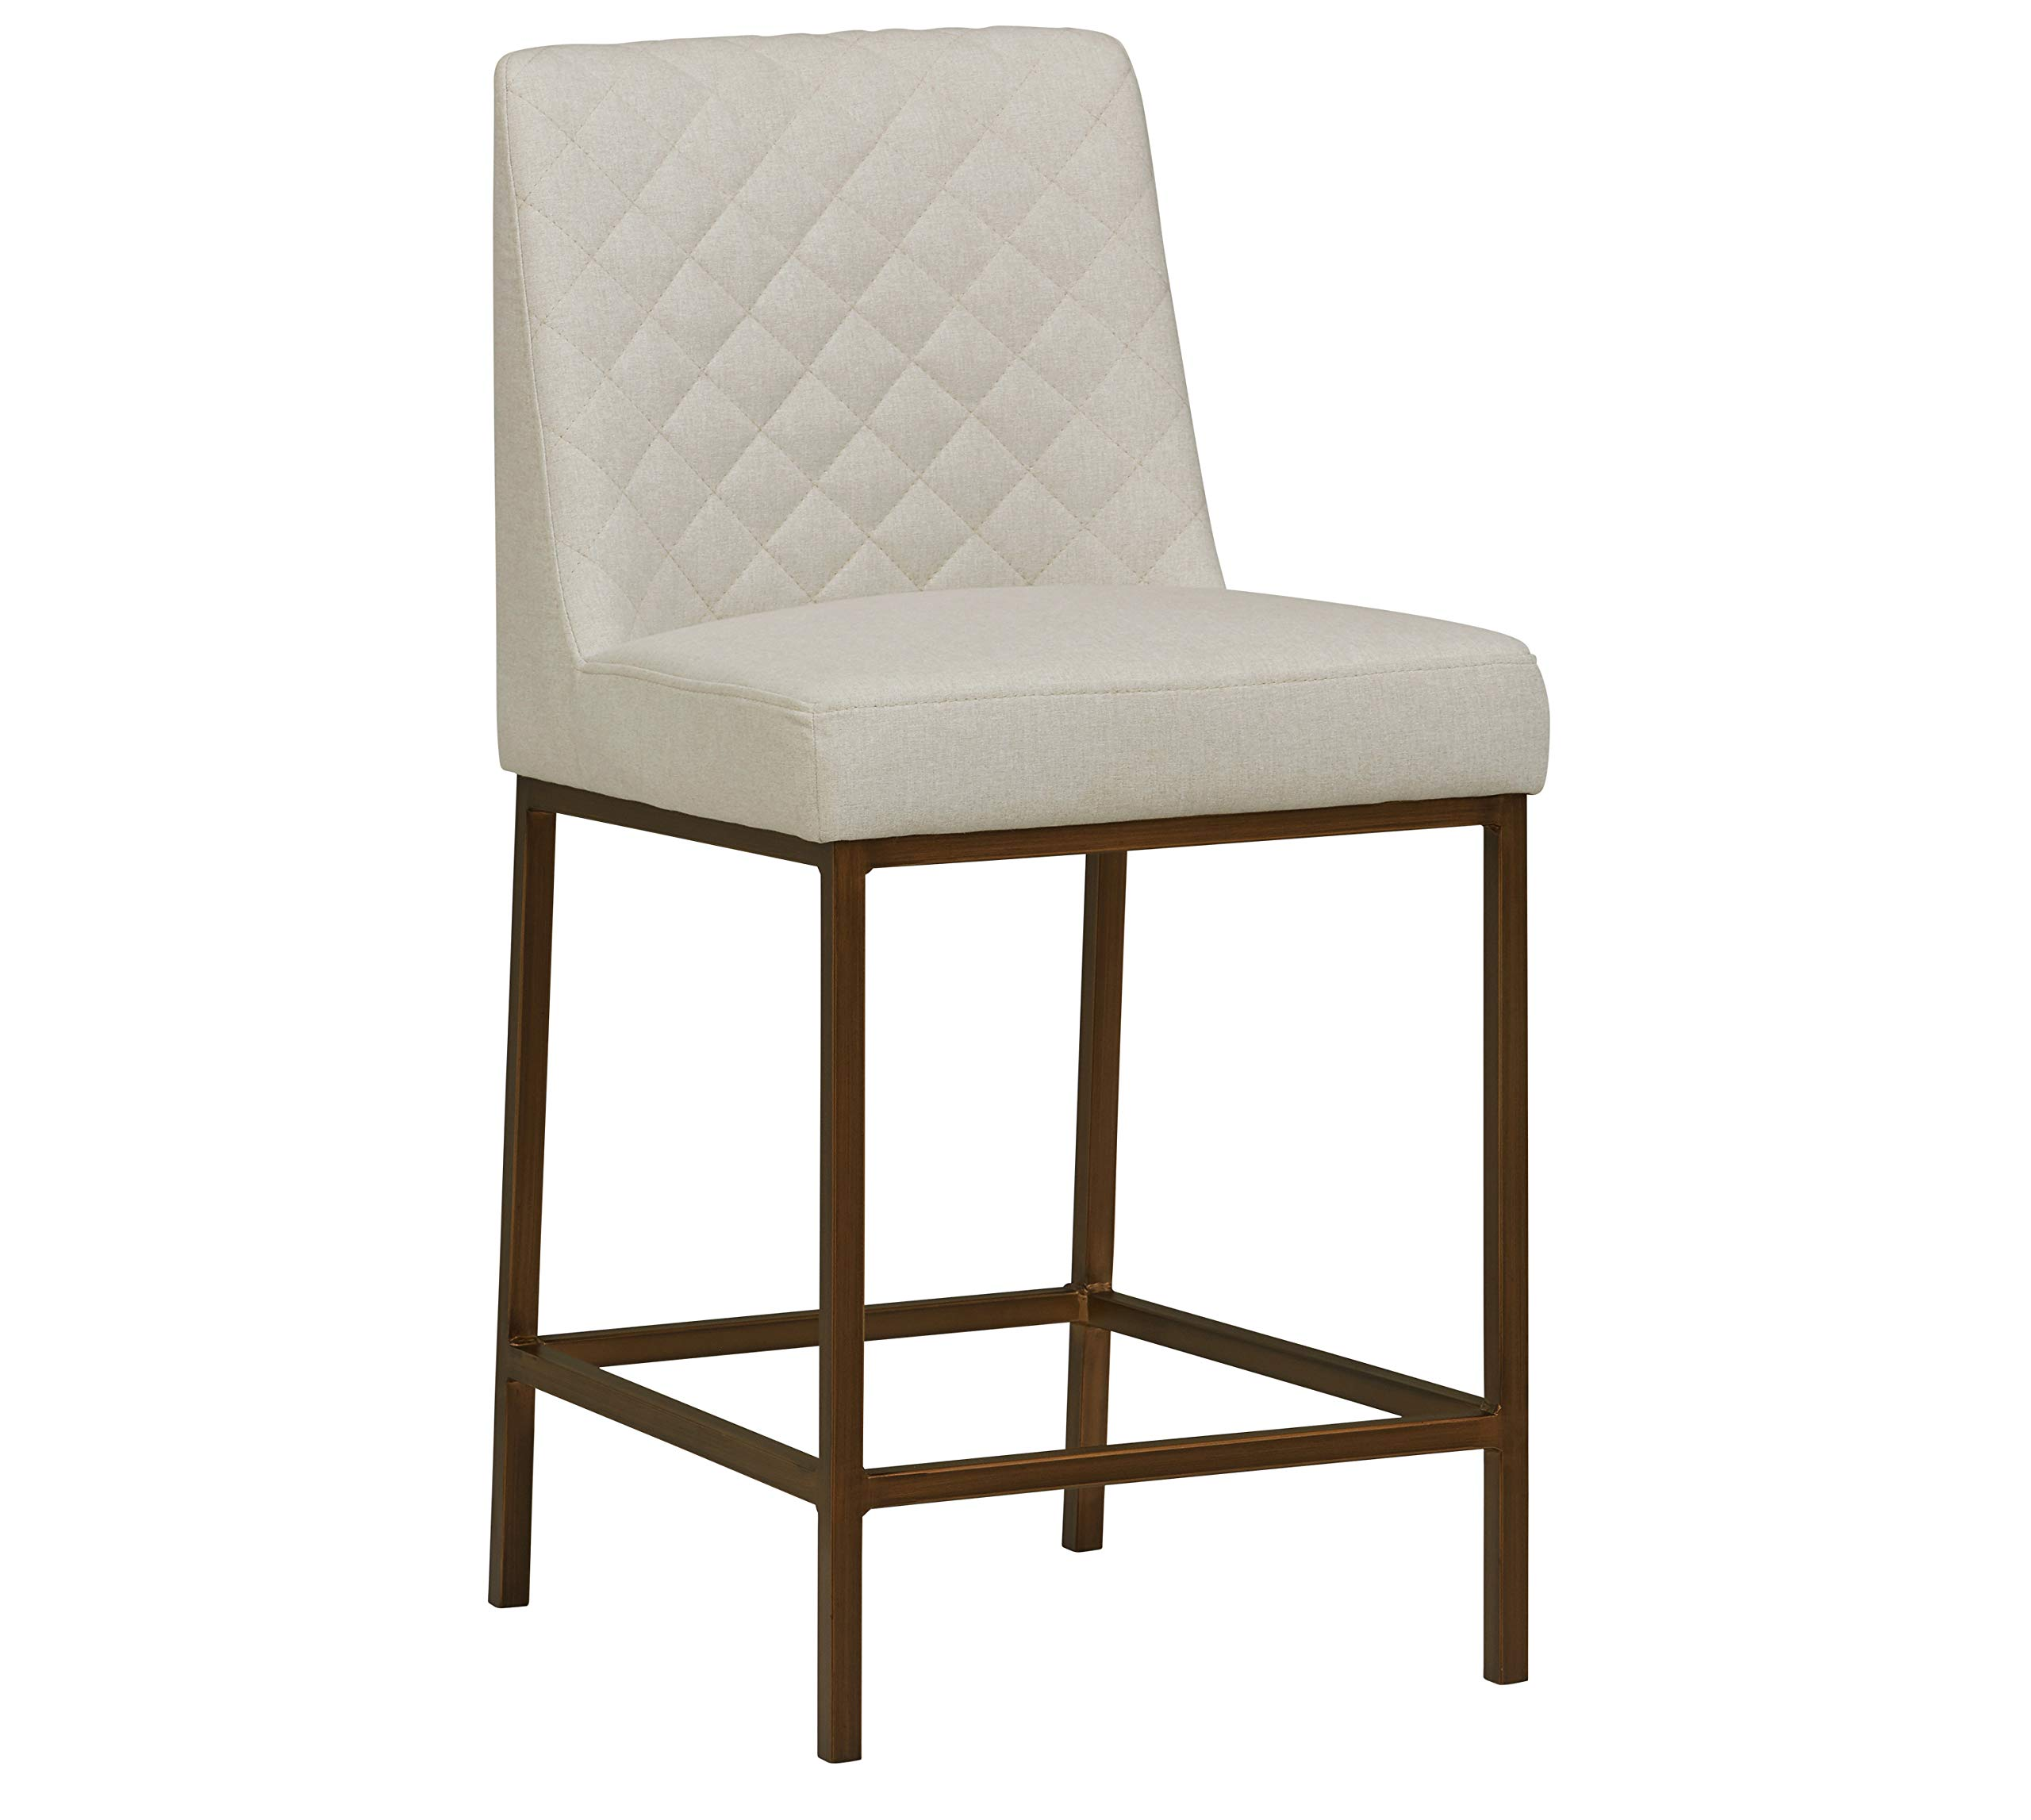 Rivet Vermont Modern Barstool 38''H, Chalk by Rivet